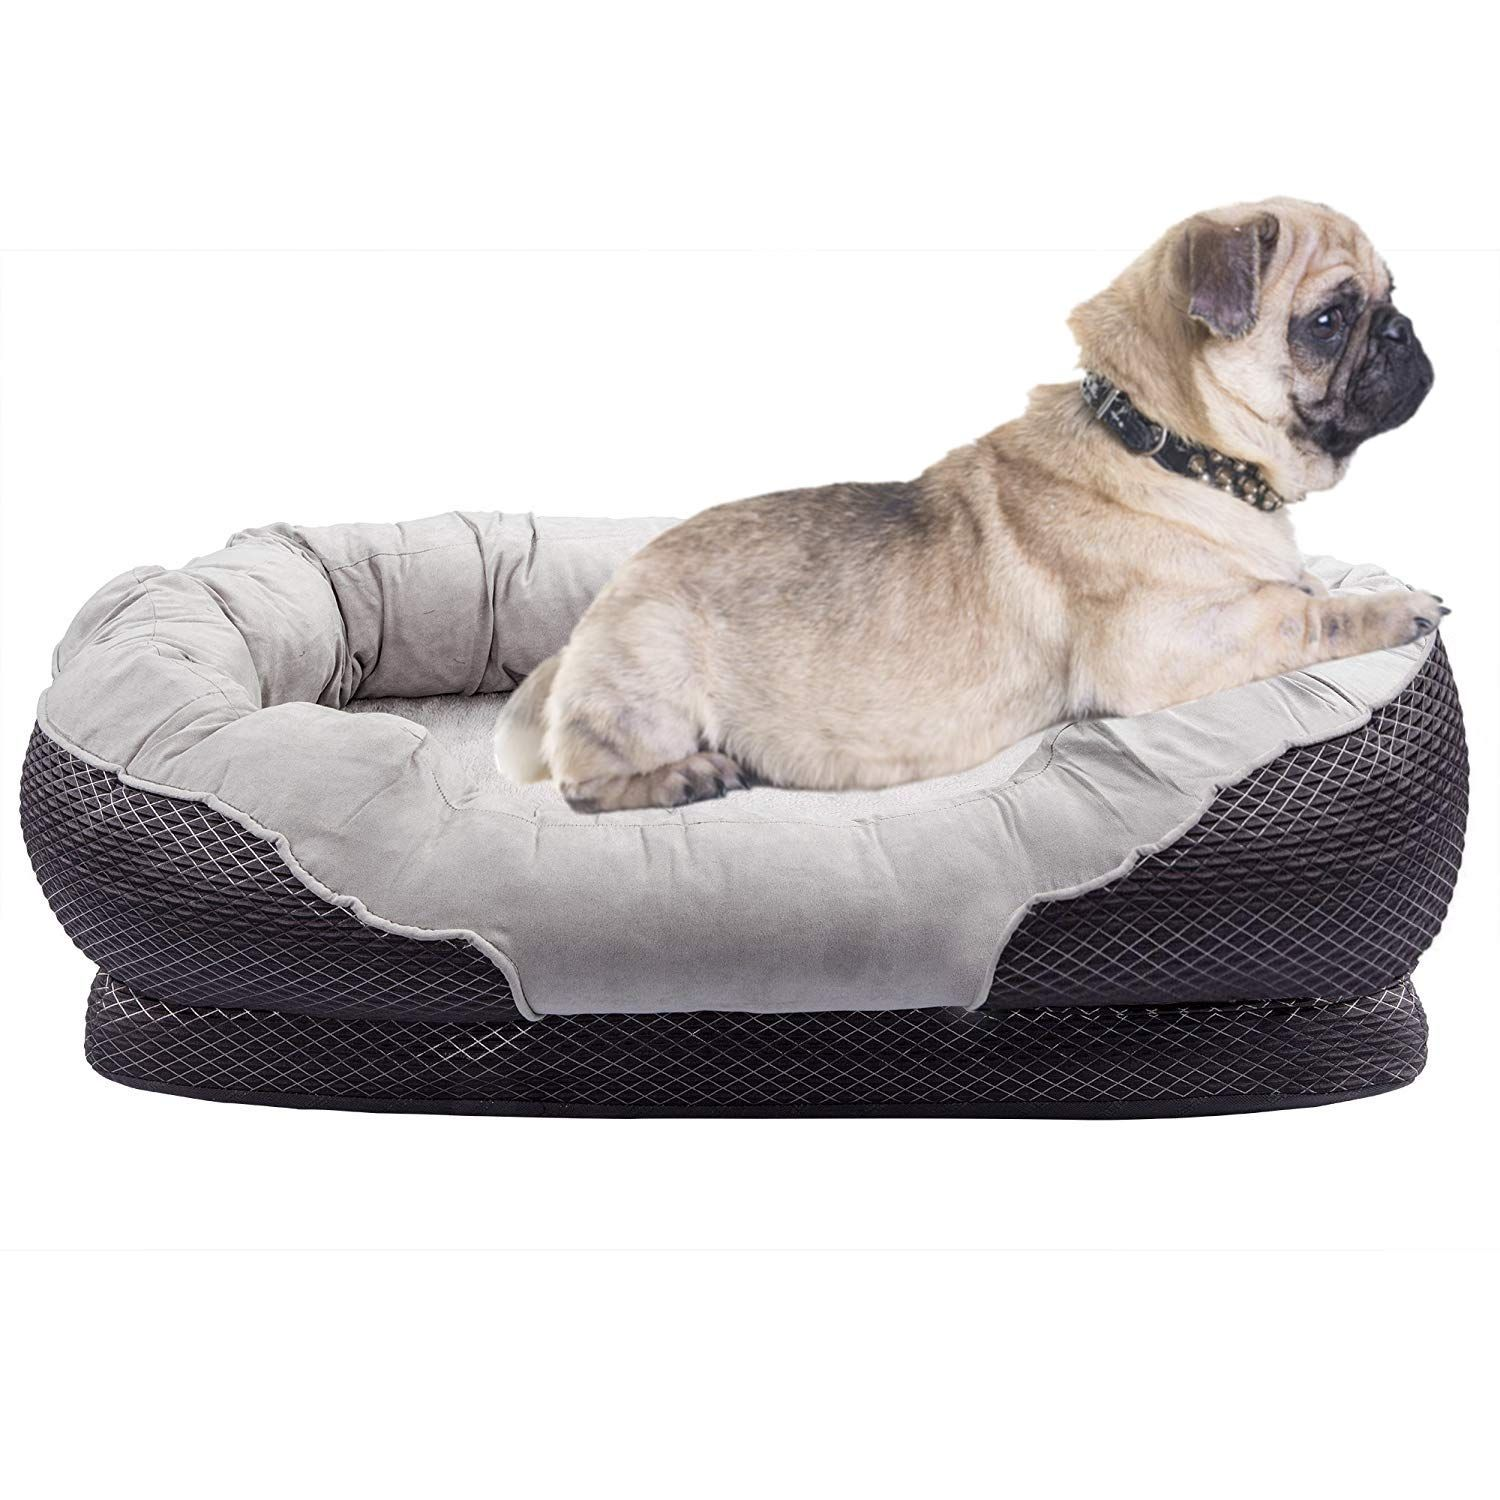 Asfrost Dog Beds With Padded Rim Cushion And Nonslip Bottom See This Great Product It Is An Affiliate Link Orthopedic Dog Bed Puppy Beds Dog Bed Furniture Pet bed with removable cover